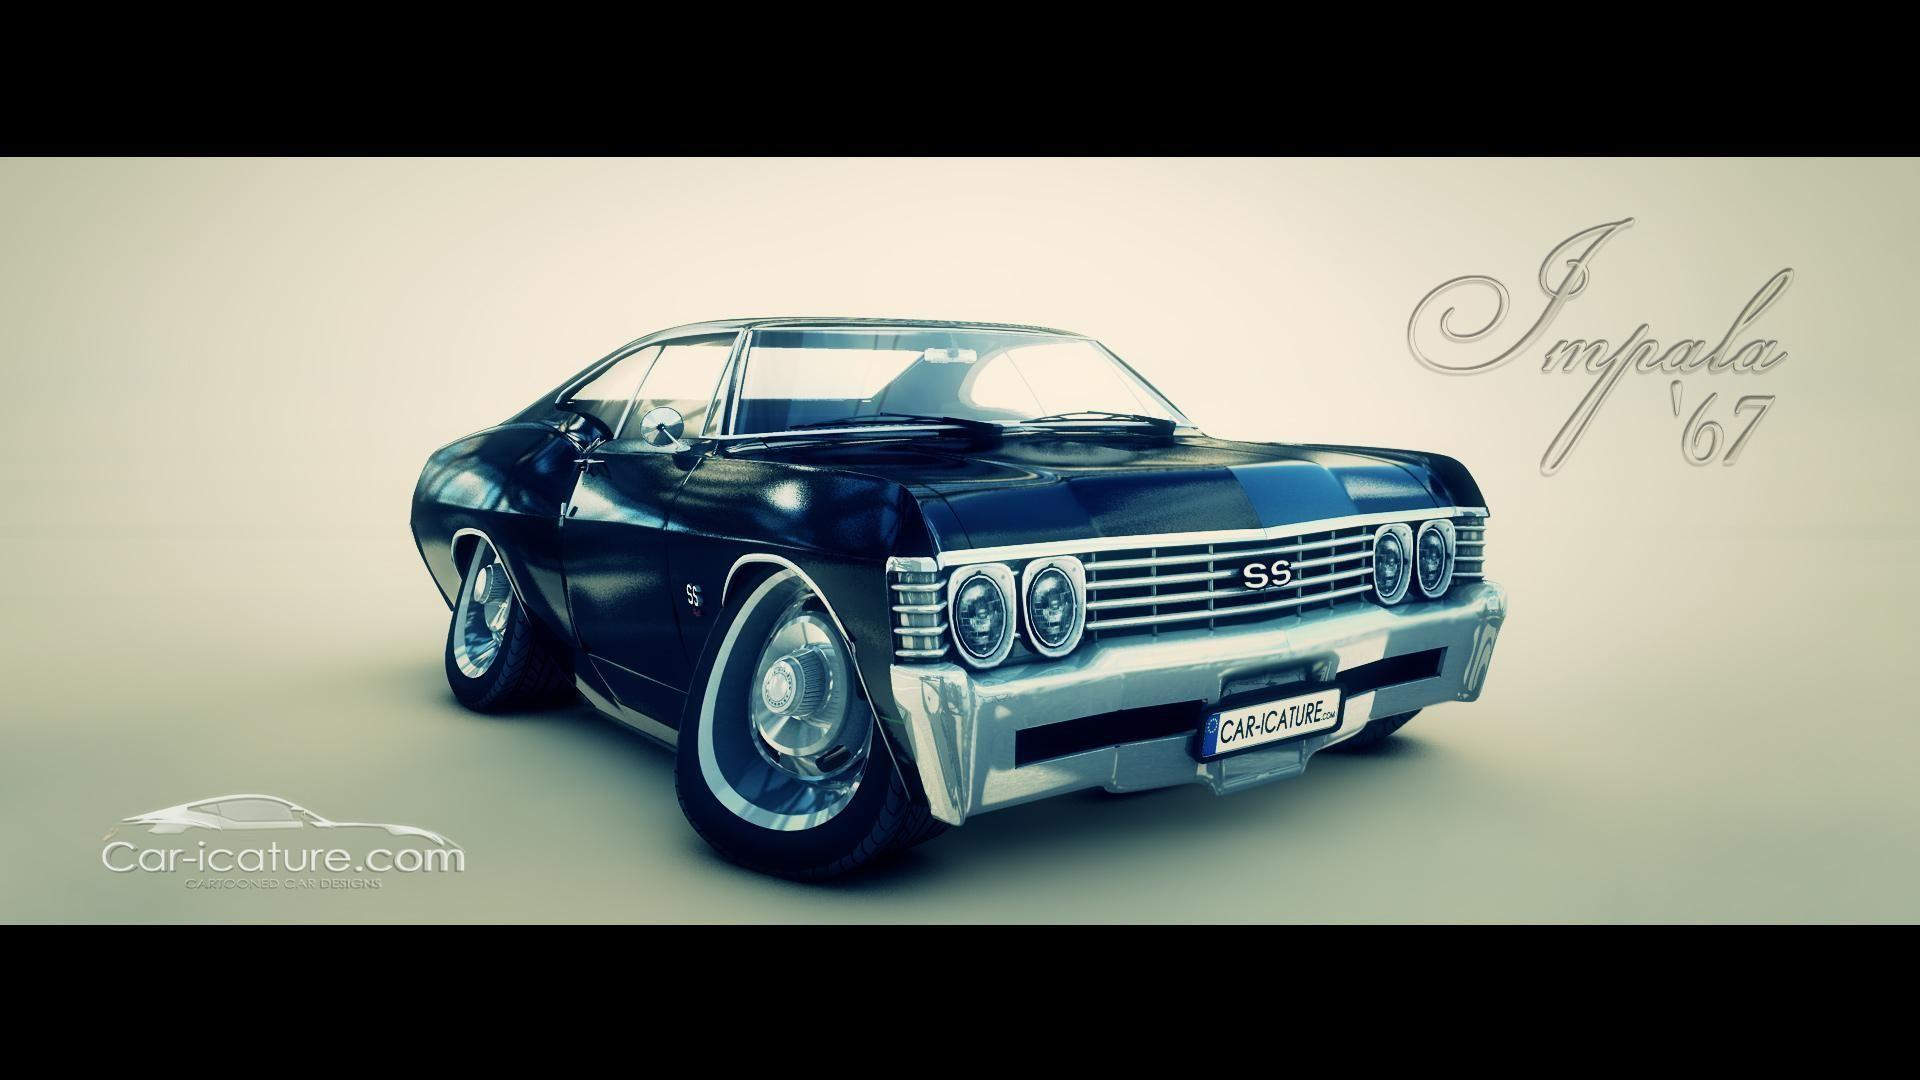 1967 Chevy Impala HD desktop wallpapers : Widescreen : High